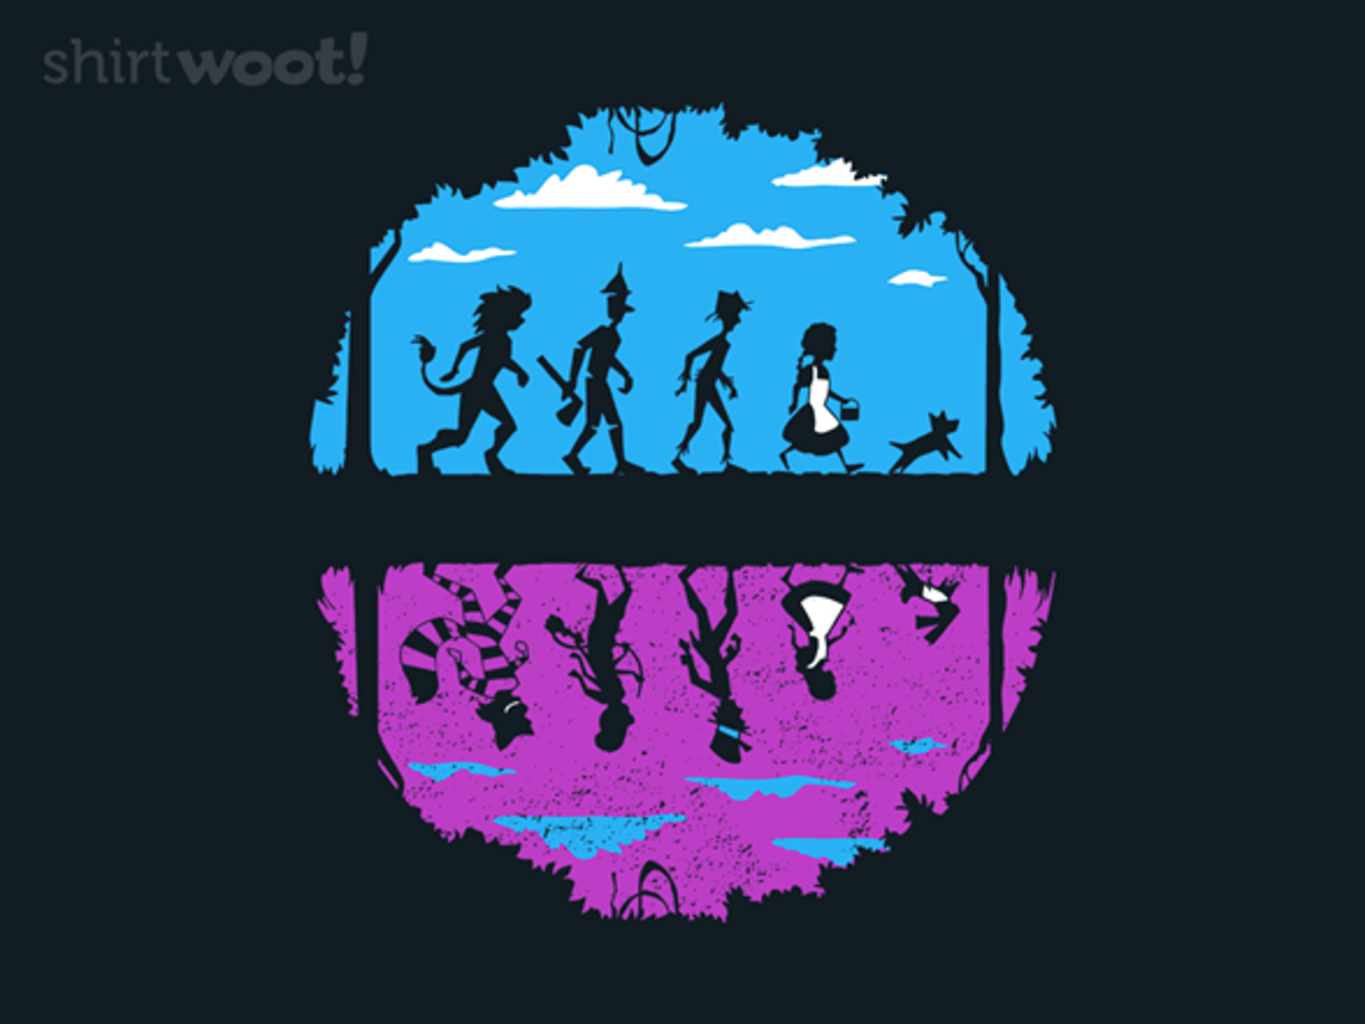 Woot!: There's No Place Like Wonderland - $15.00 + Free shipping